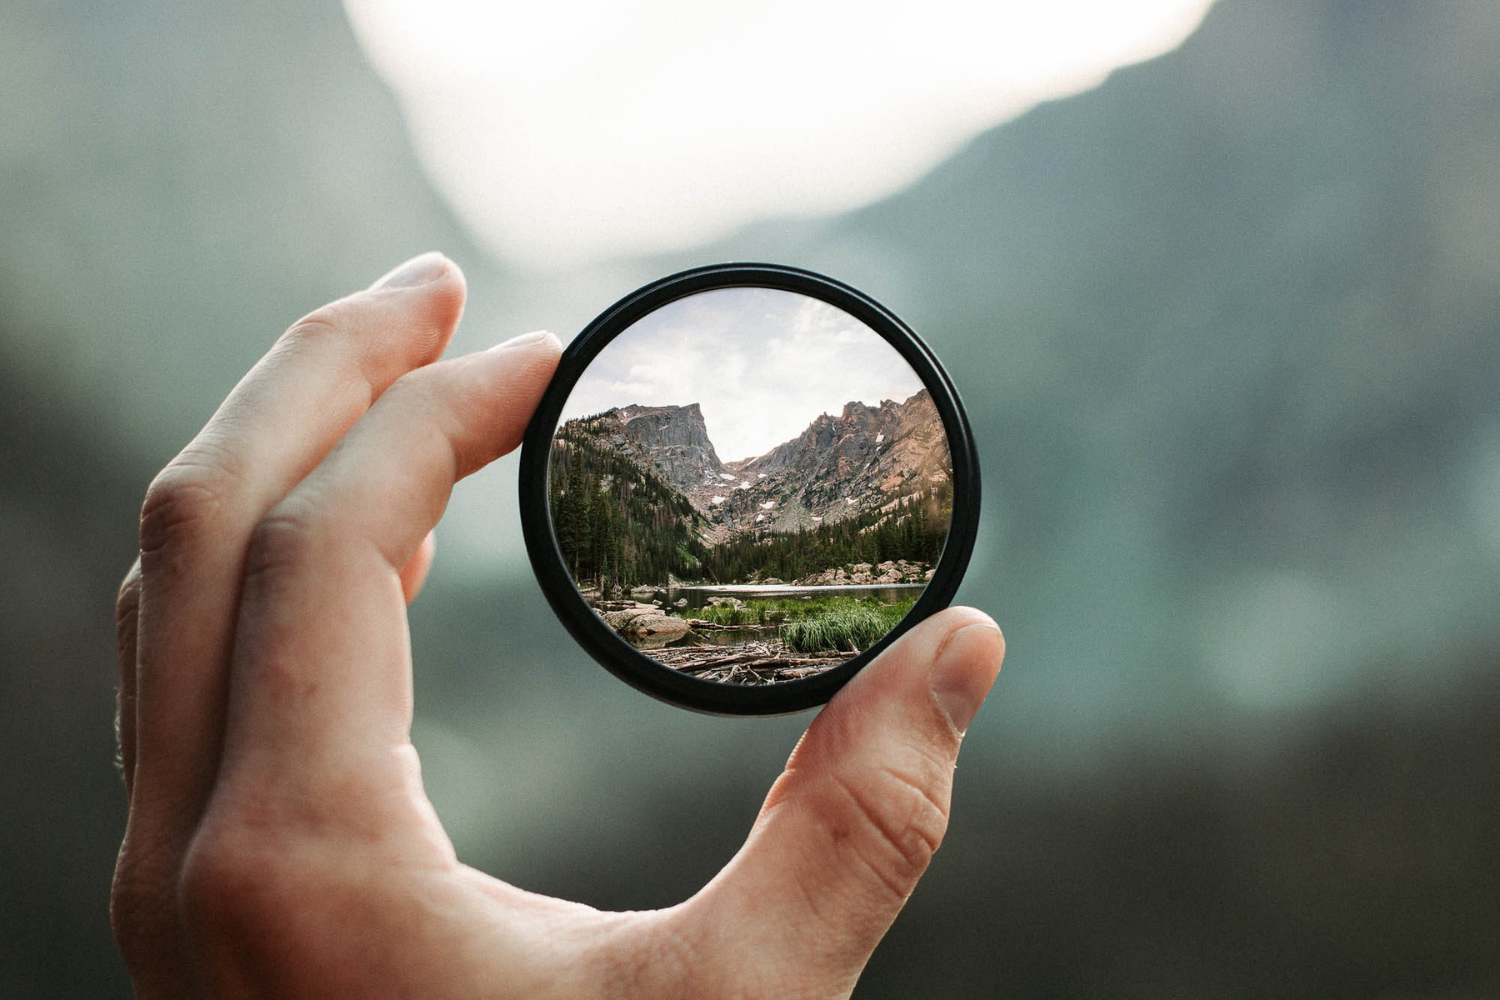 Lens being held by hand that focuses on mountains